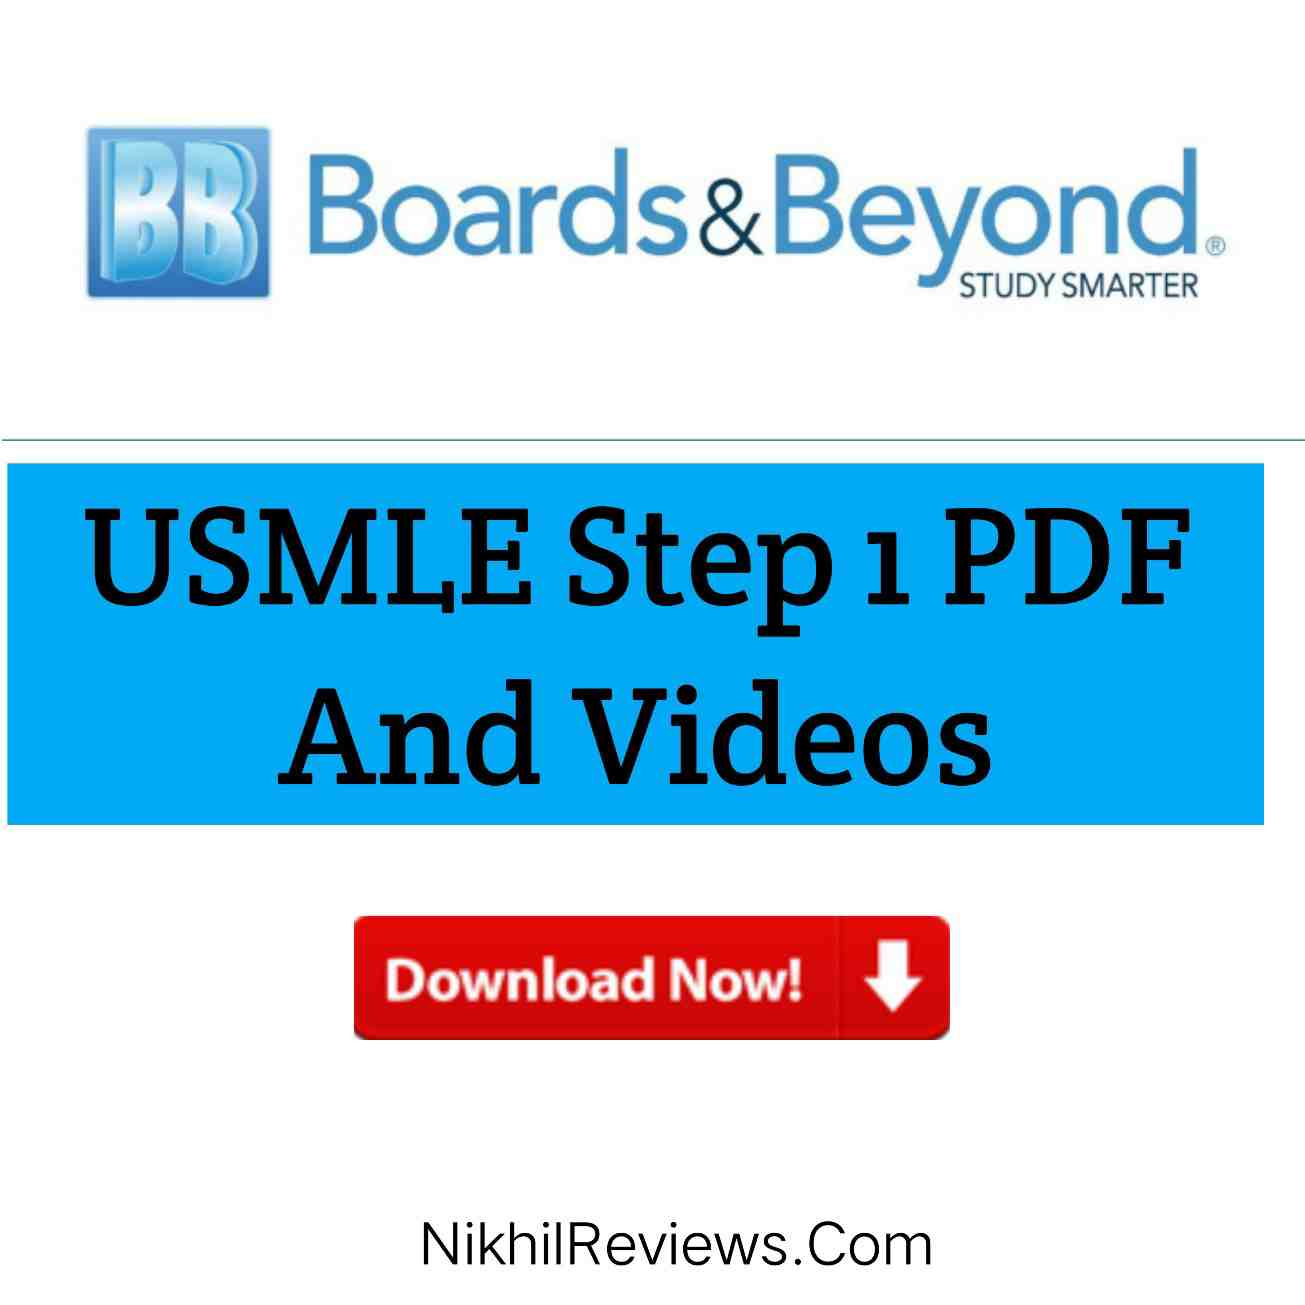 Board And Beyond USMLE Step 1 Videos And PDF Download